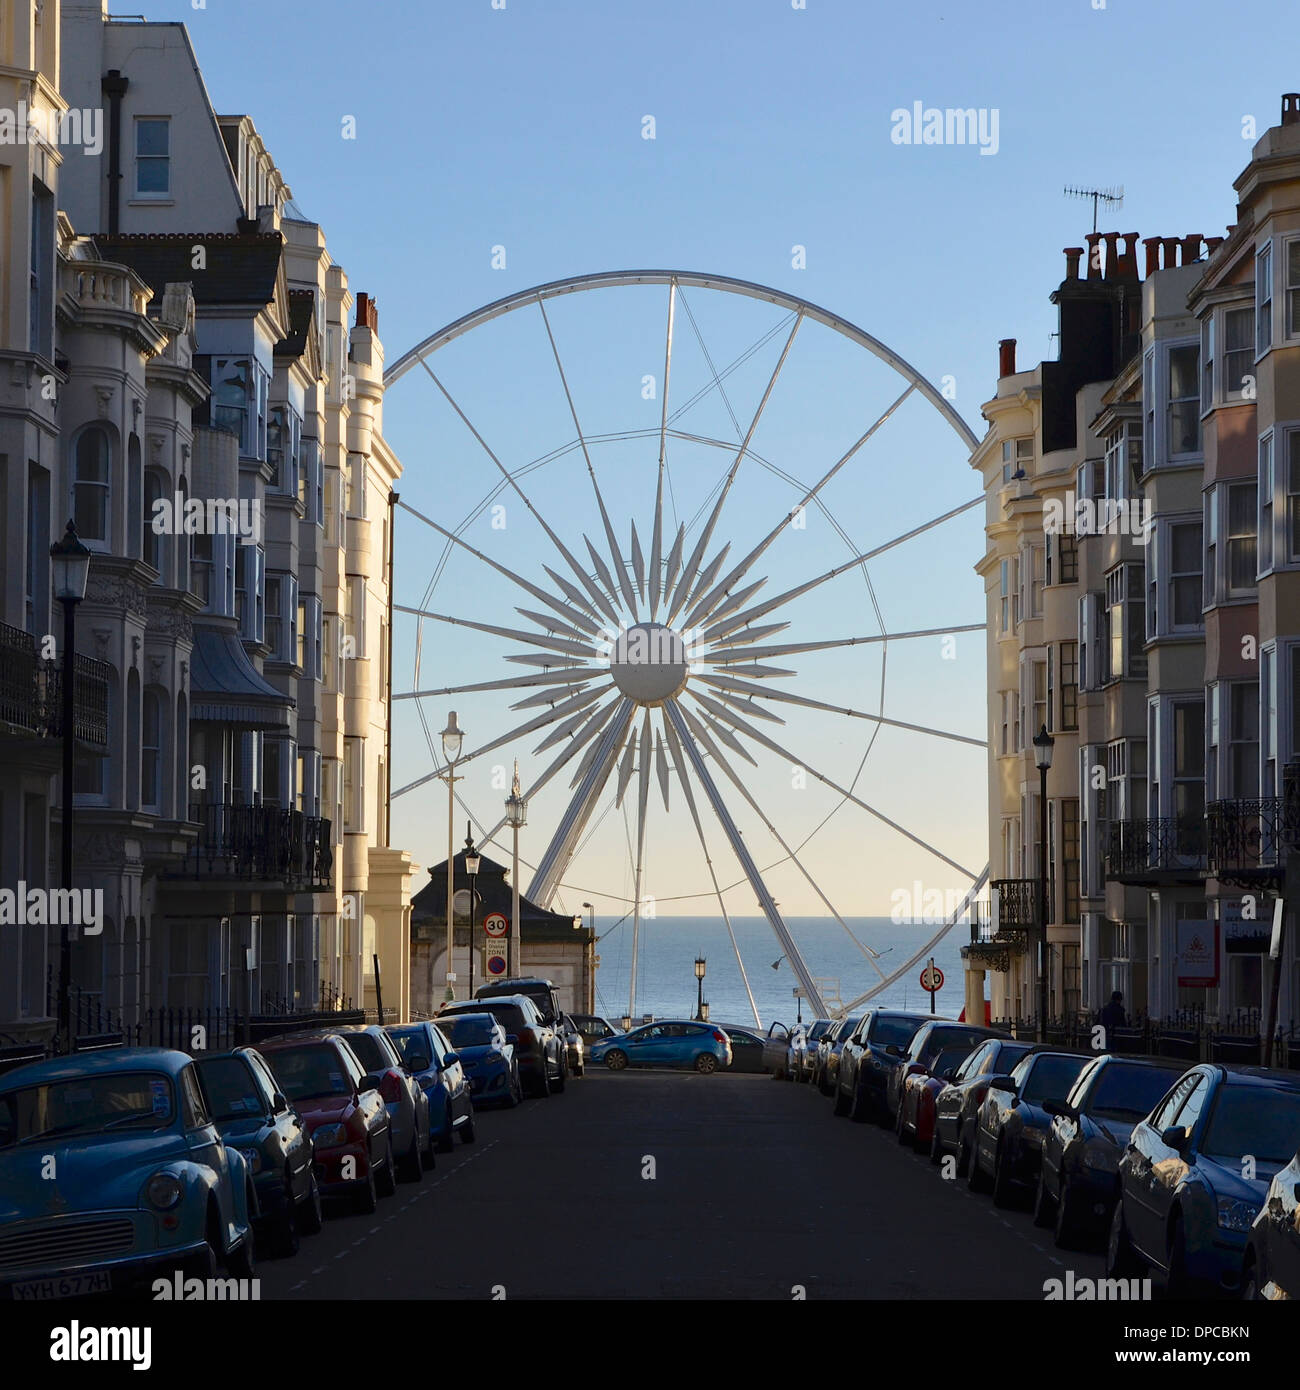 Brighton Wheel - Ferris Wheel viewed from Kemp Town with the sea in the background, framed by Victorian terraced town houses - Stock Image